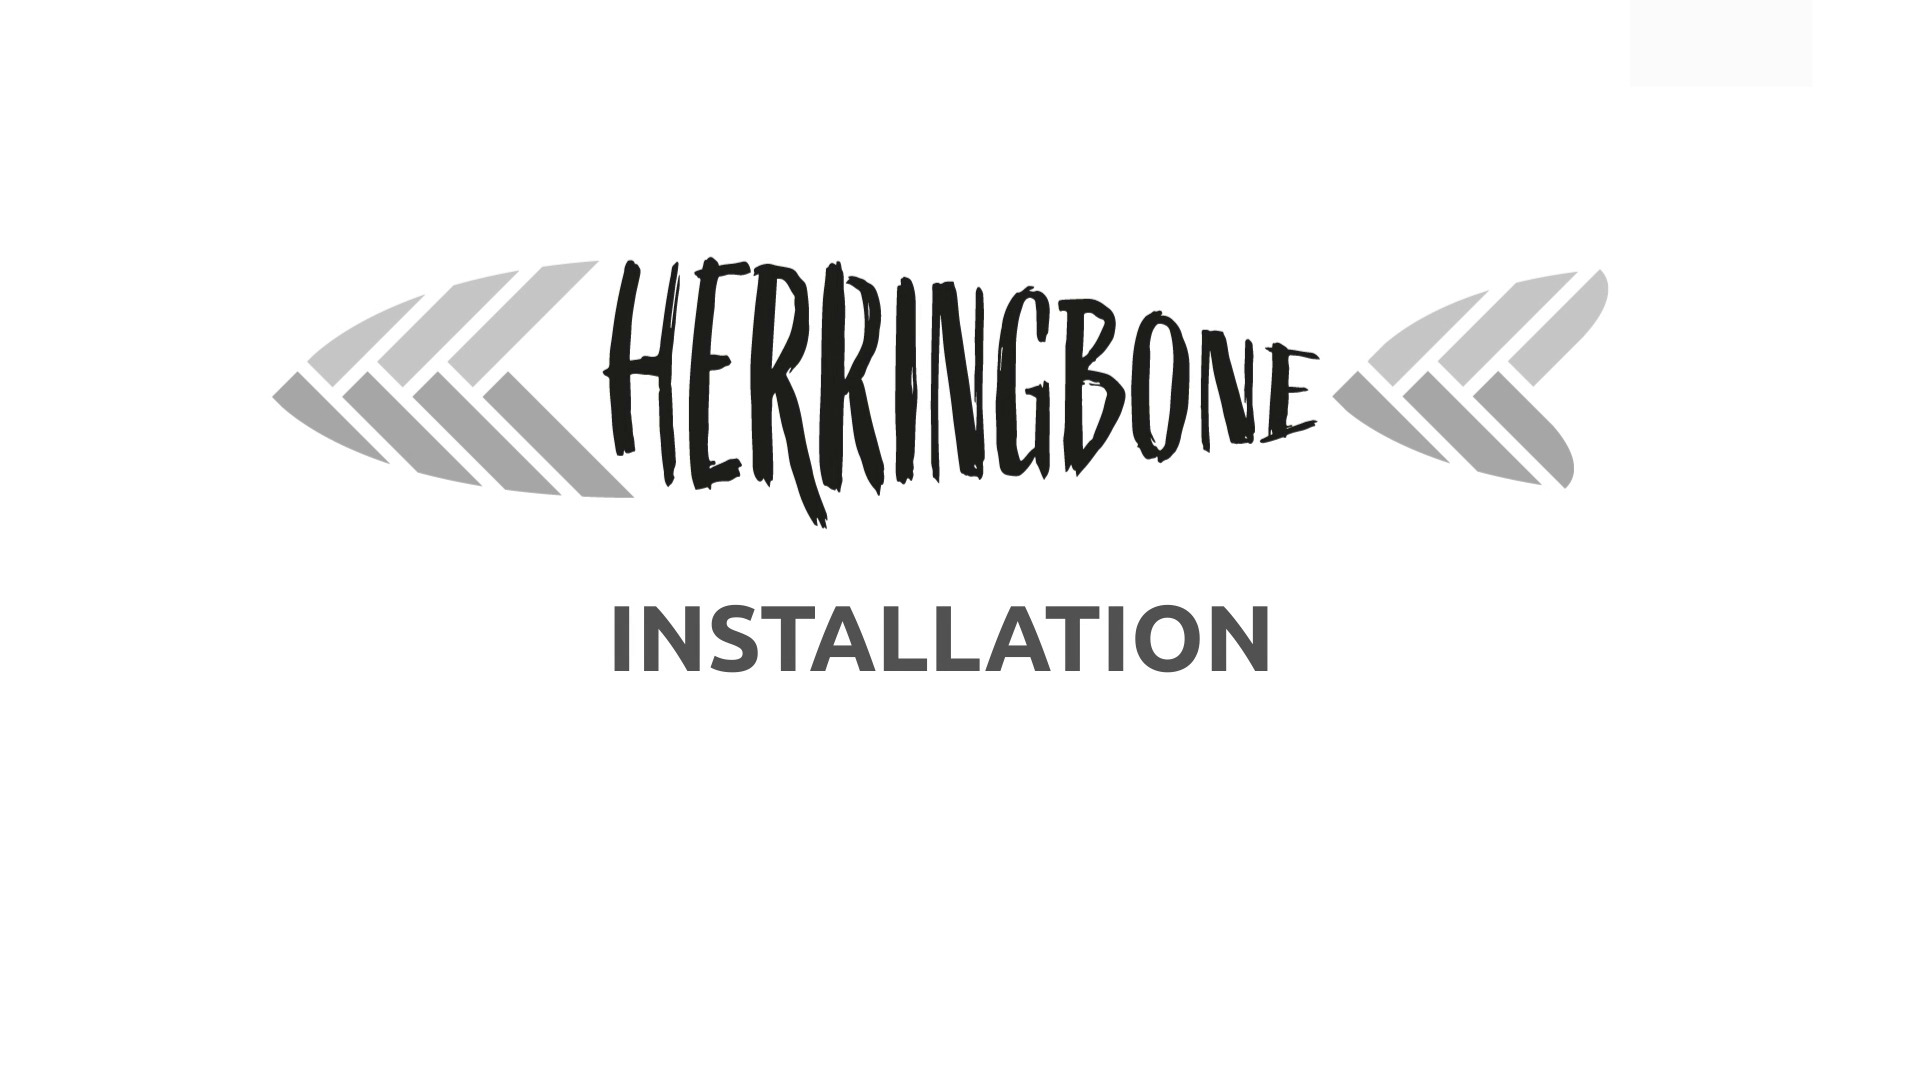 HERRINGBONE Installation